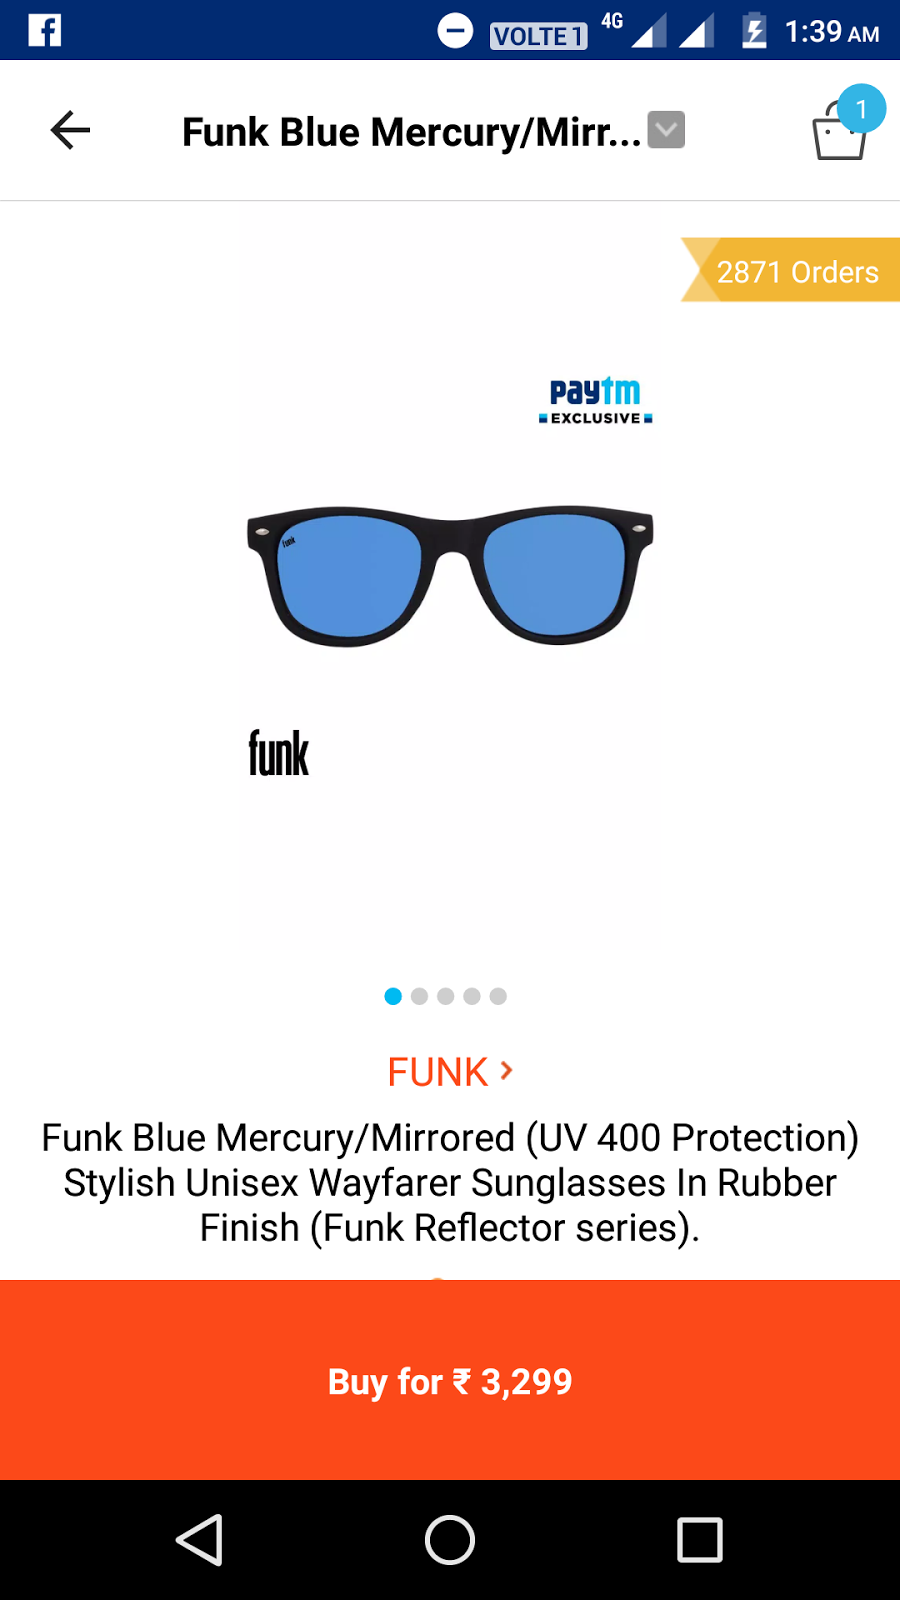 07473f5681ed7 Loot deal on funk sunglass at paytm. 100% cash back. Code  SPARK100 Steps   1  open paytm 2  Search FUNK 3  Add sunglass at cart 4  Apply code  SPARK100